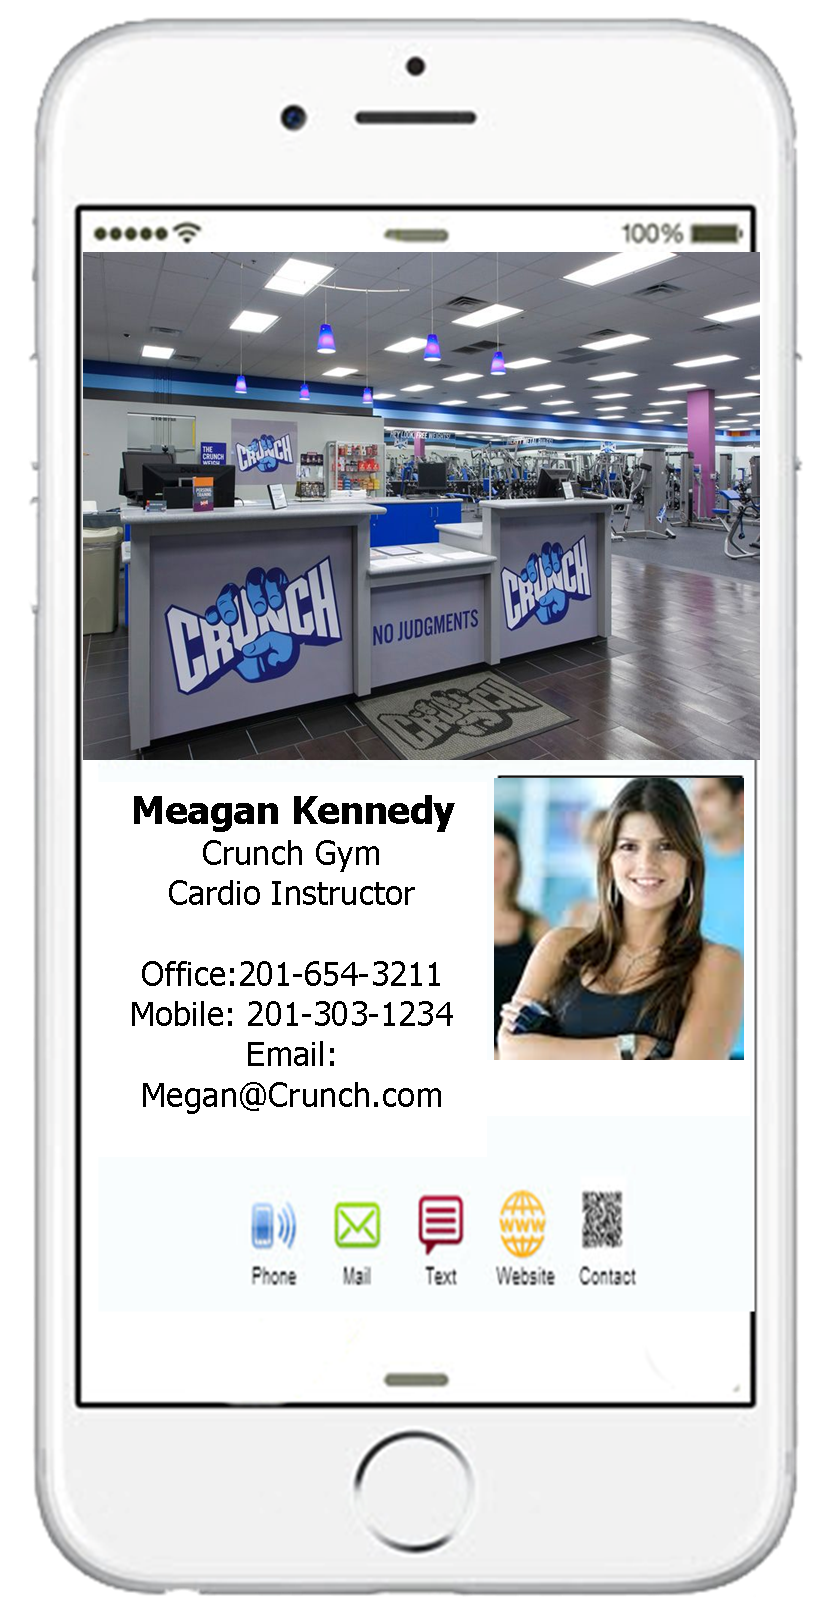 MOBILE BUSINESS CARD STRATEGIES